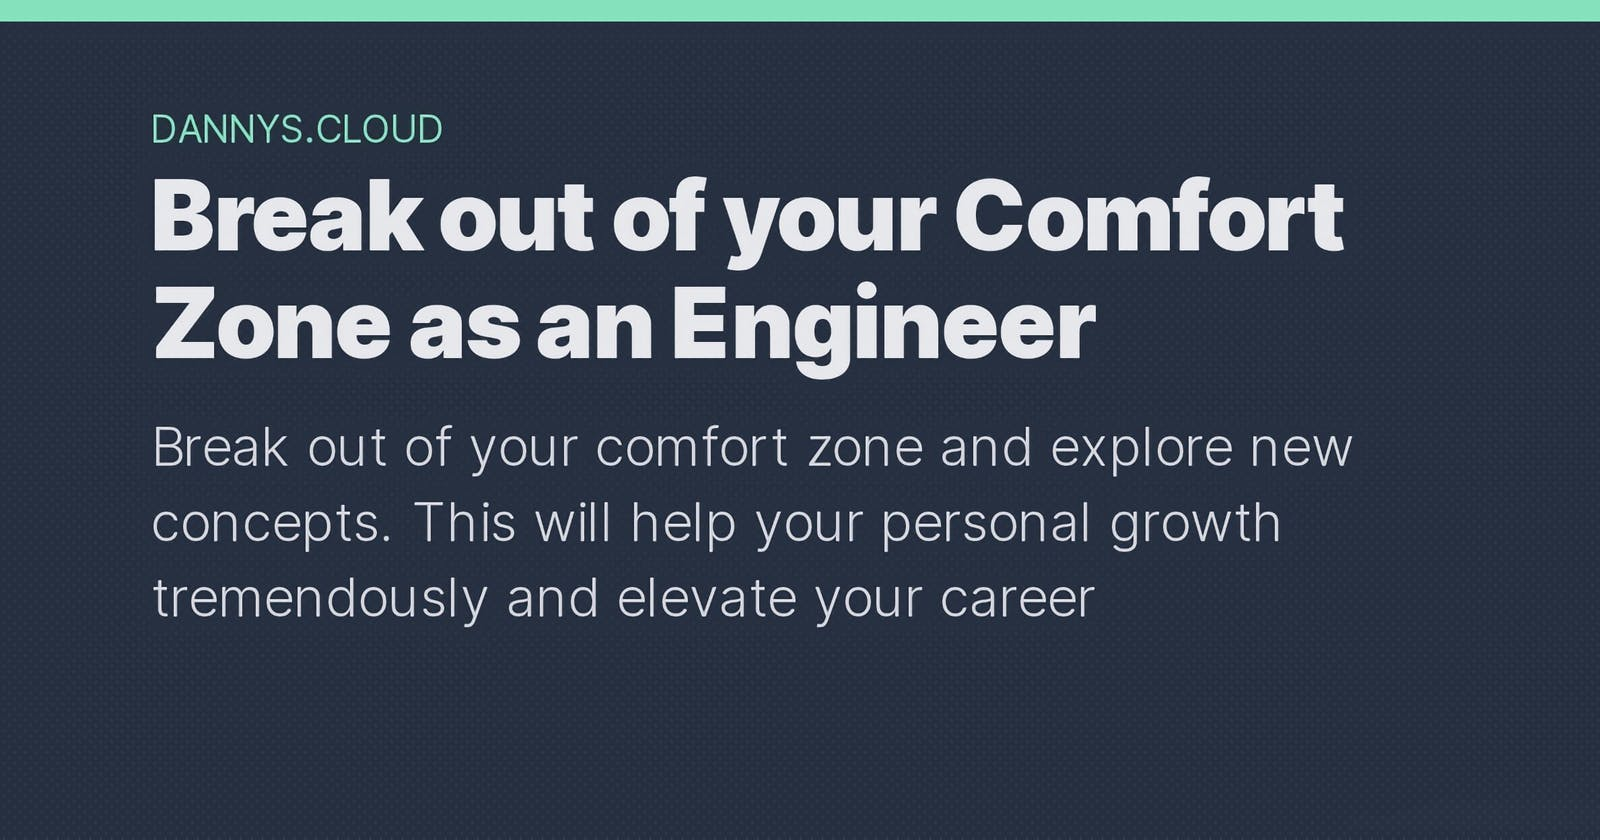 Break out of your Comfort Zone as an Engineer